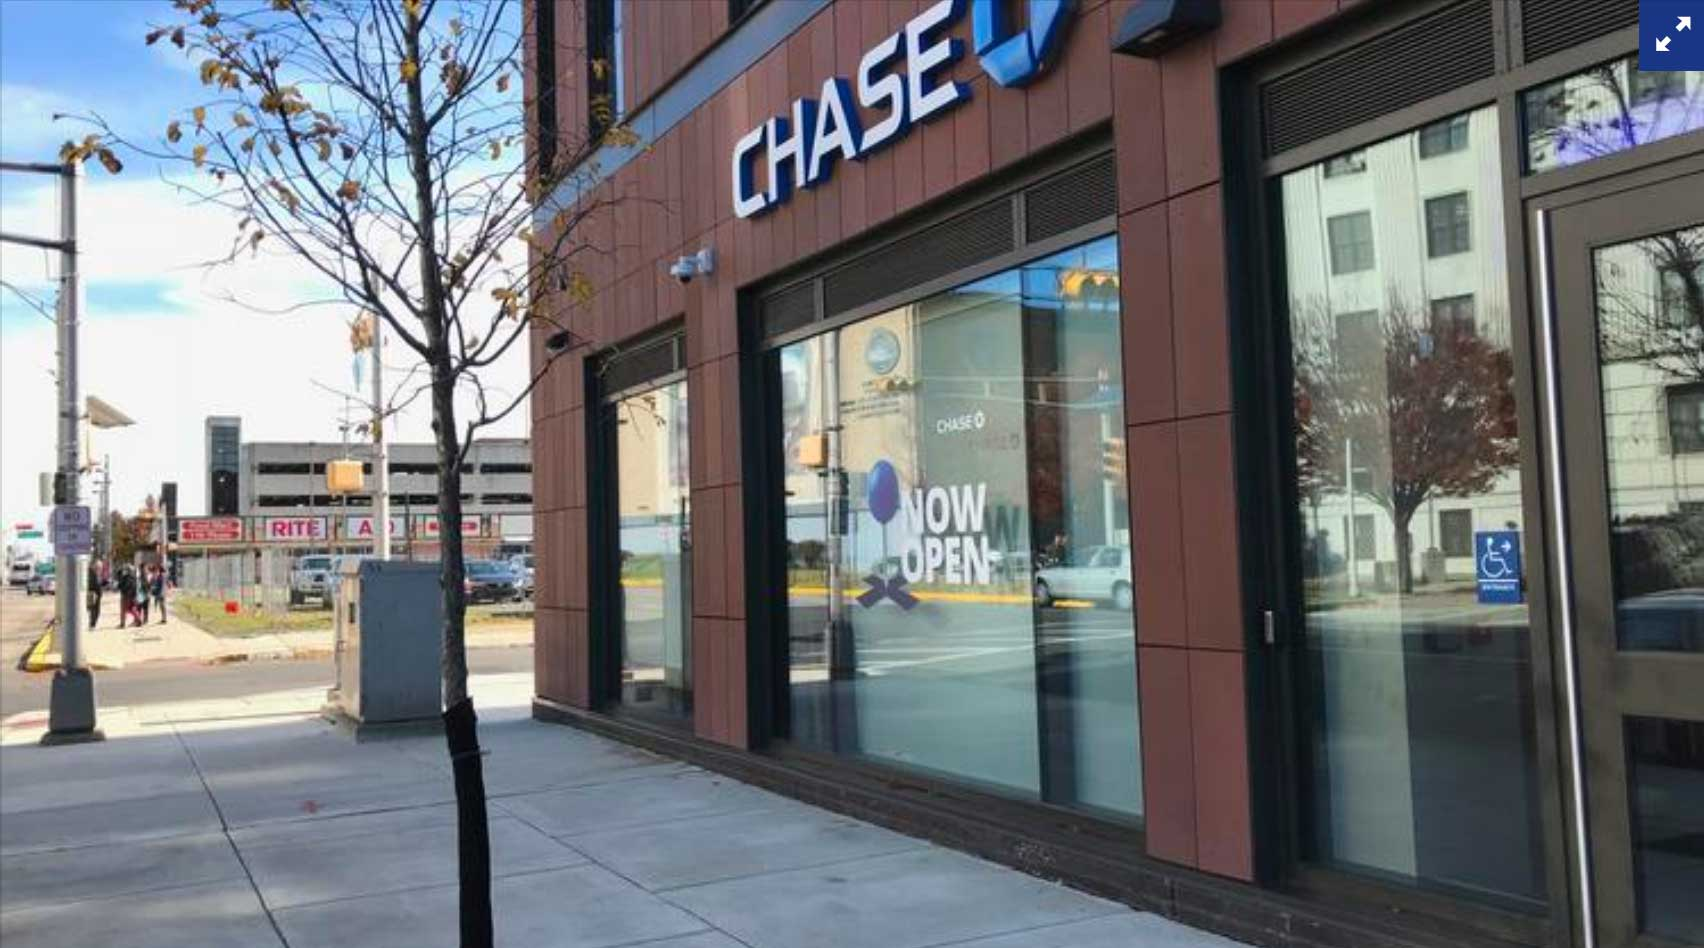 Chase Bank buildiing entrance